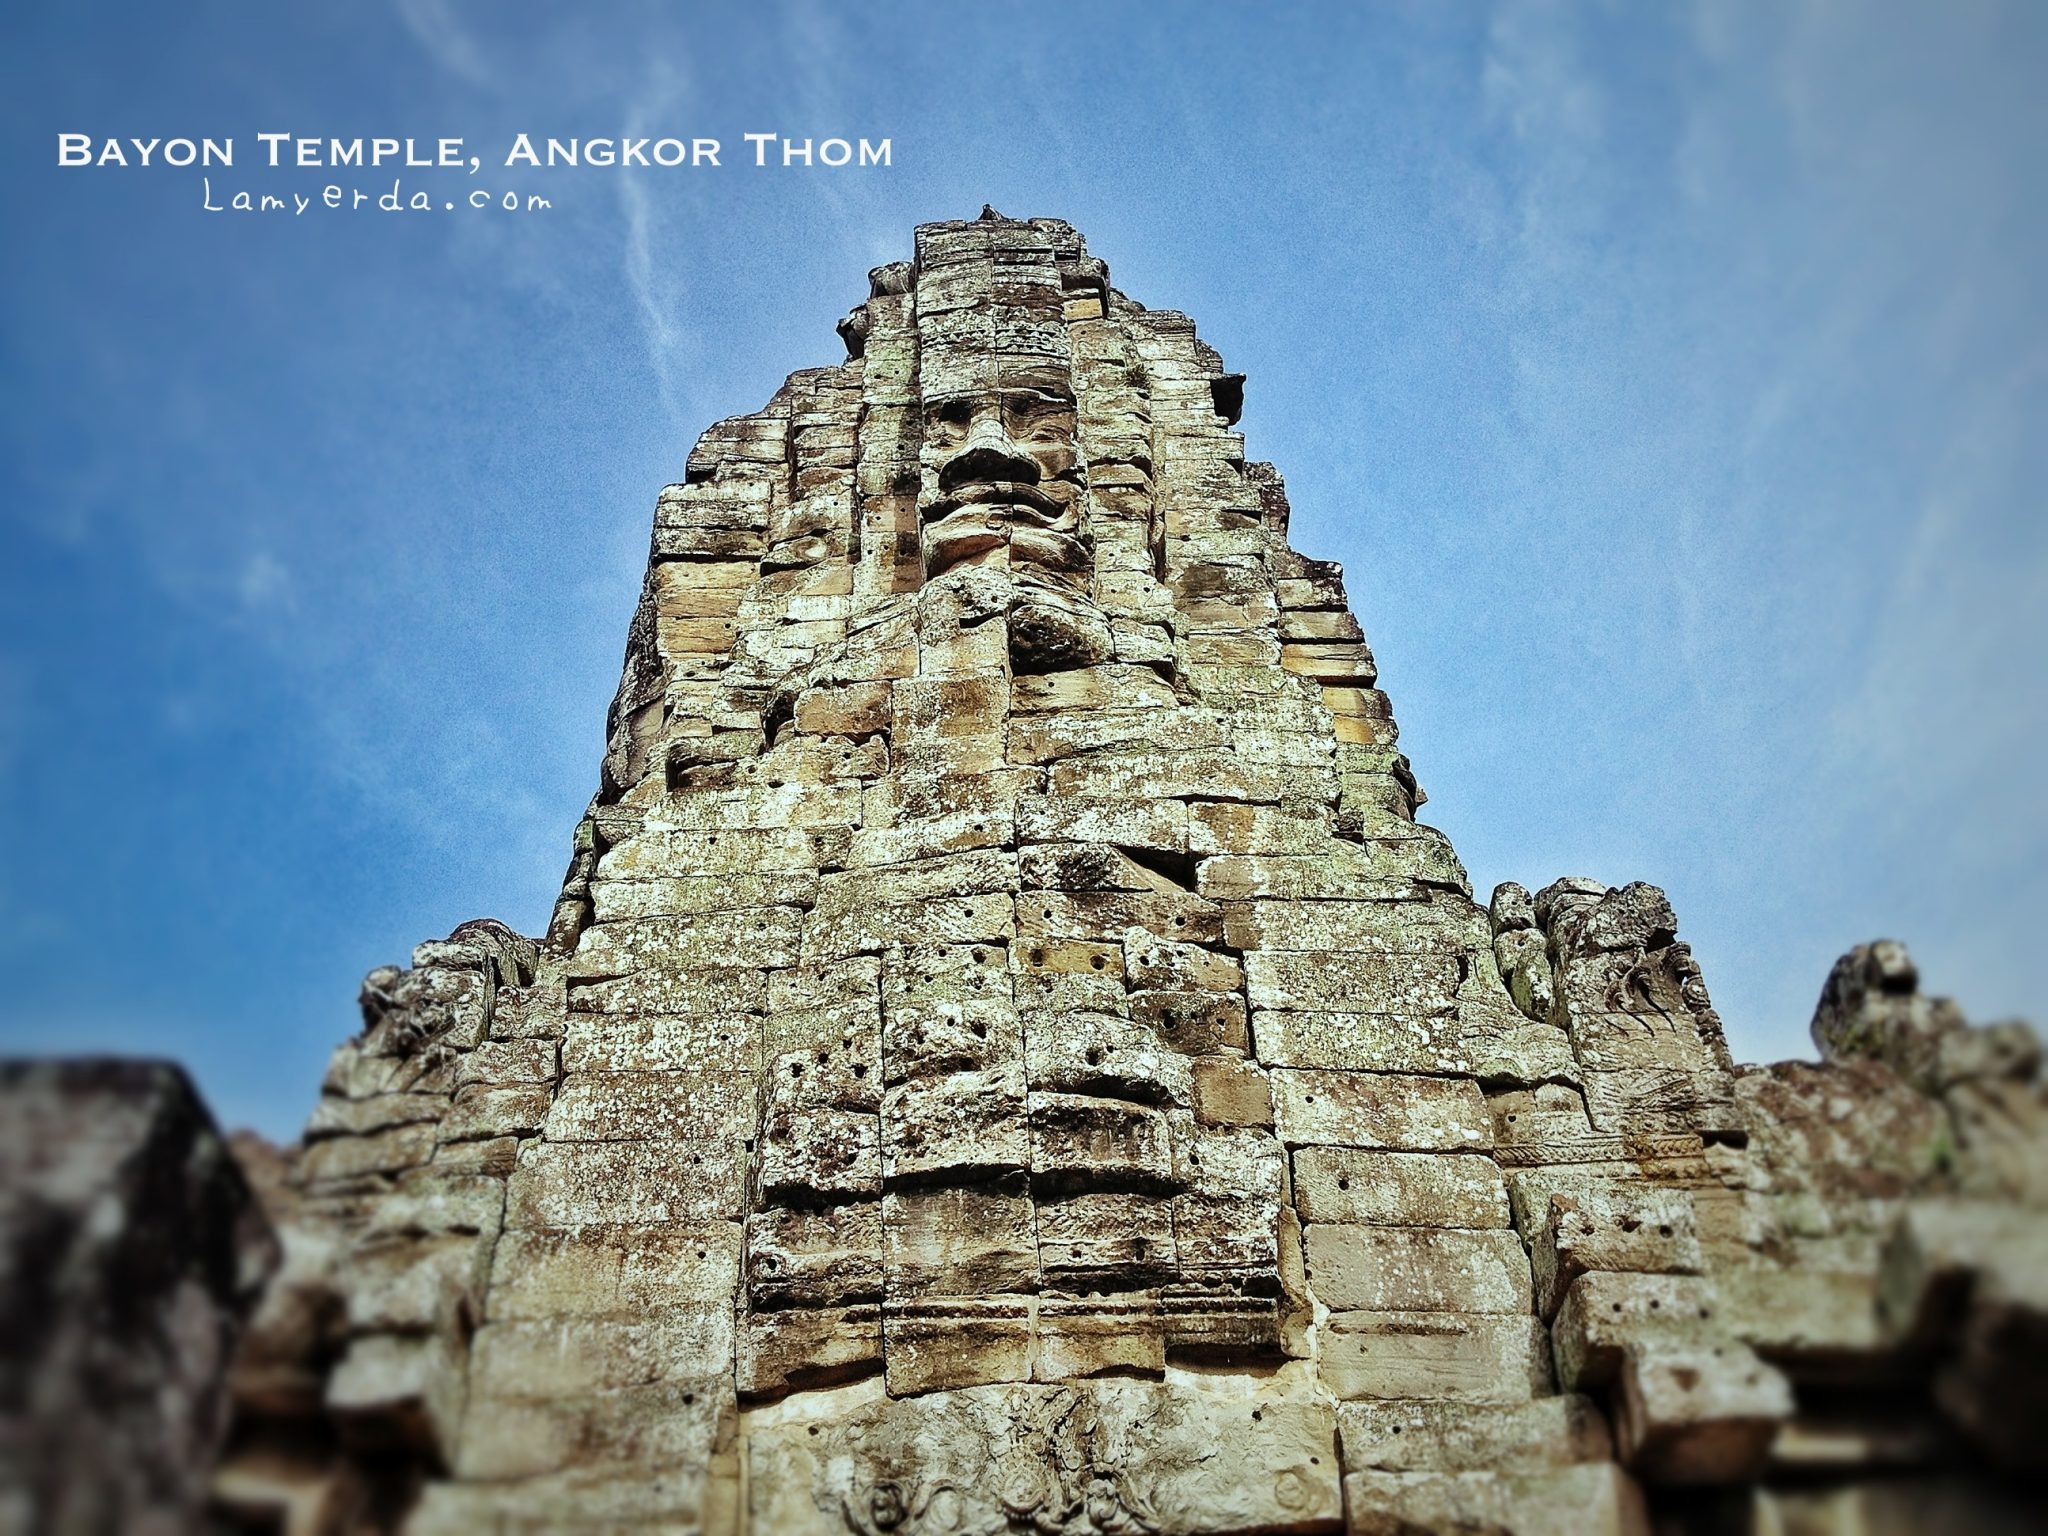 Curved Faces in Bayon Temple